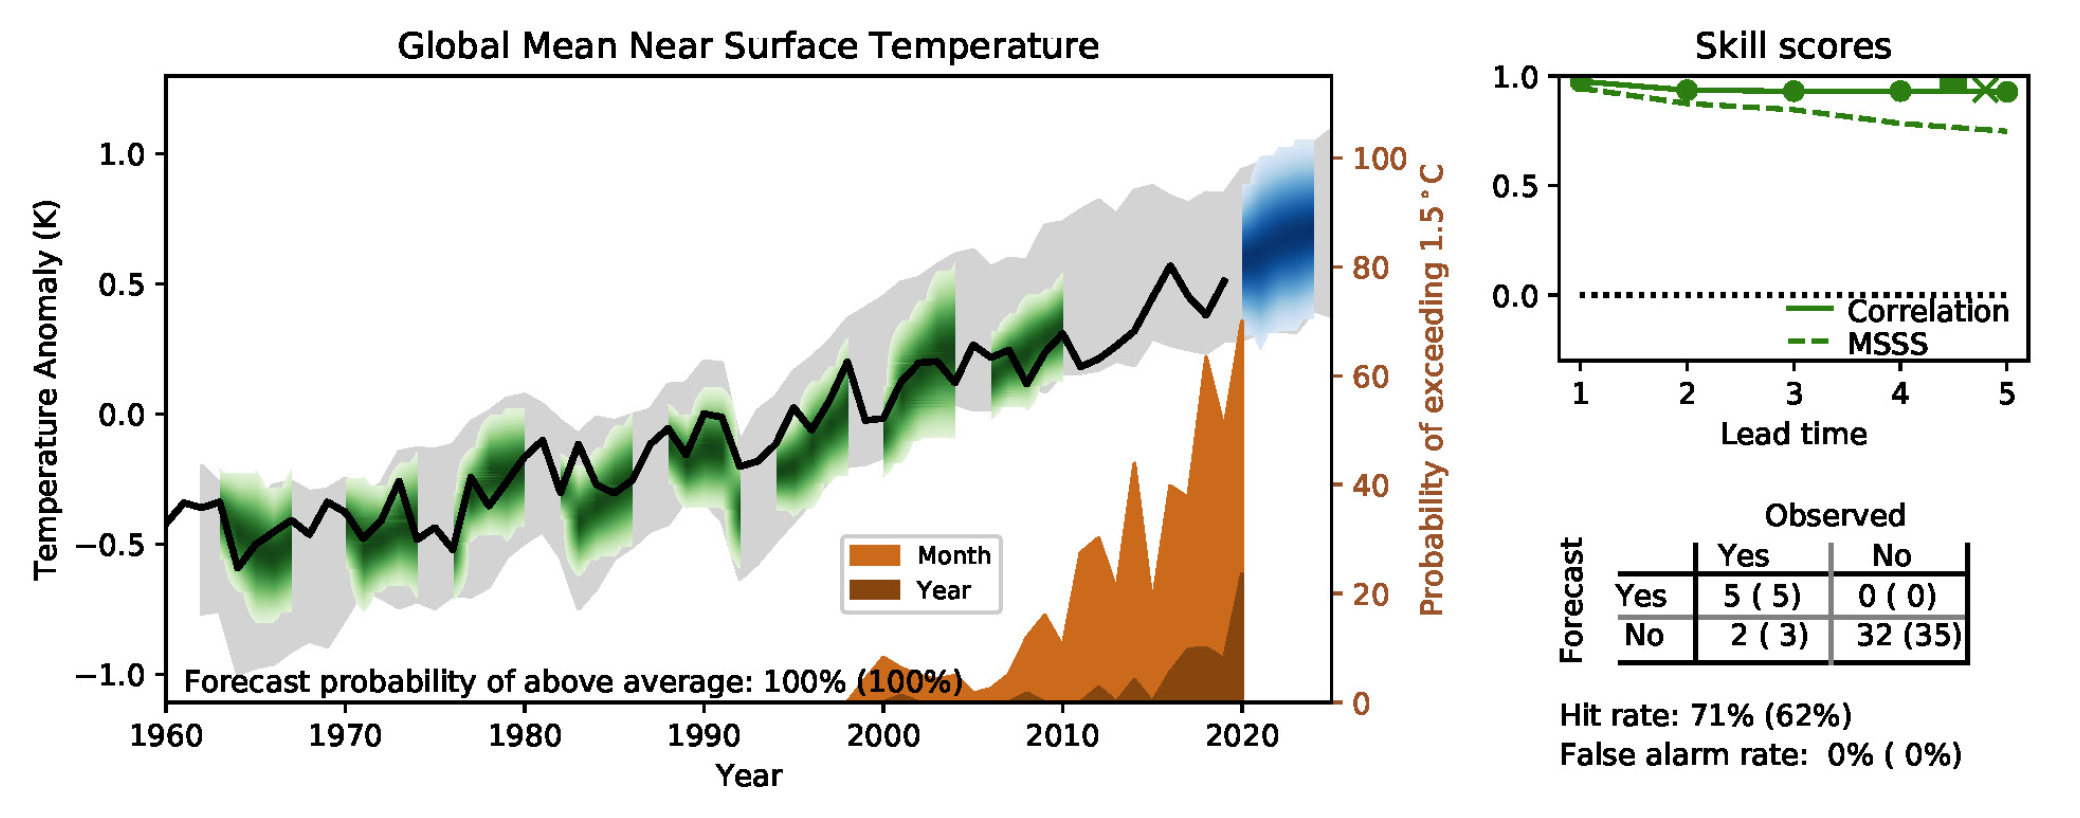 Figure 2. Multi-annual predictions of global mean near surface temperature relative to 1981–2010